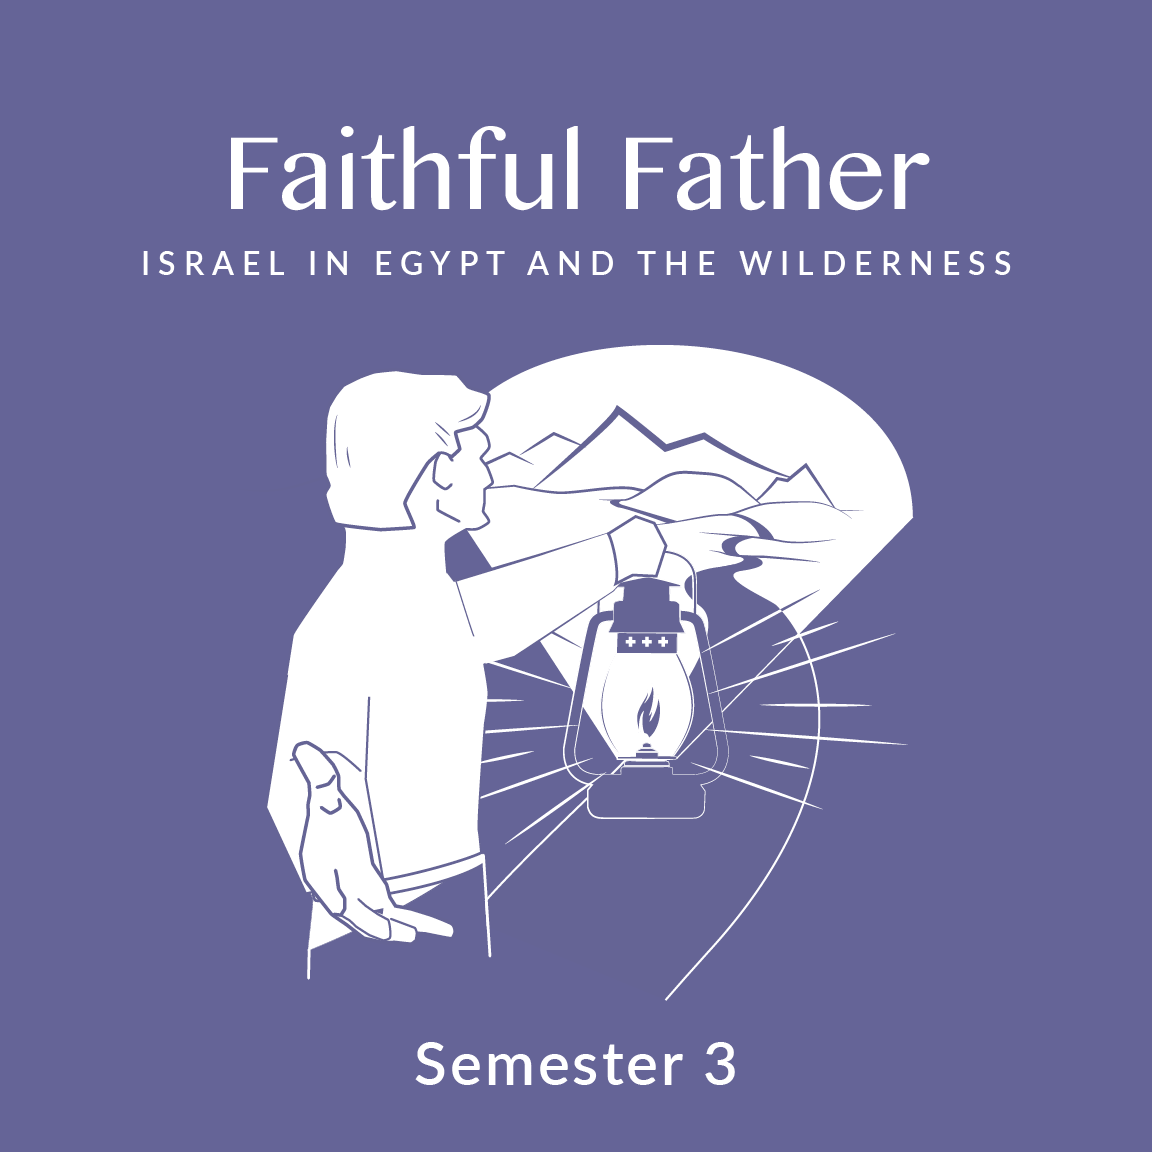 Semester 3: Faithful Father